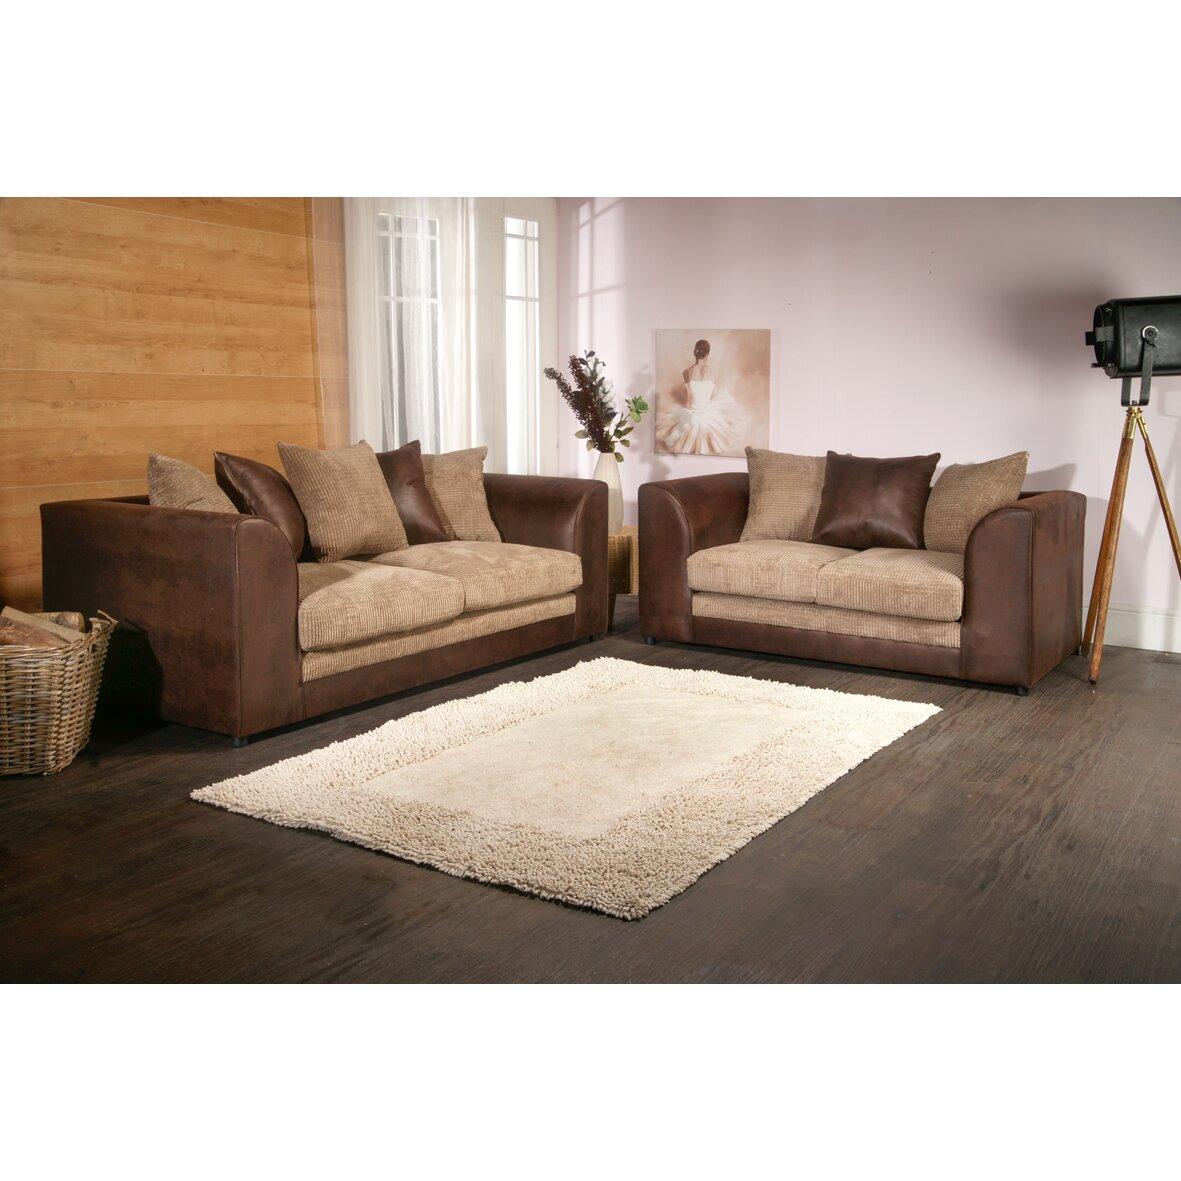 Home Haus Rabi Sofa Set Reviews